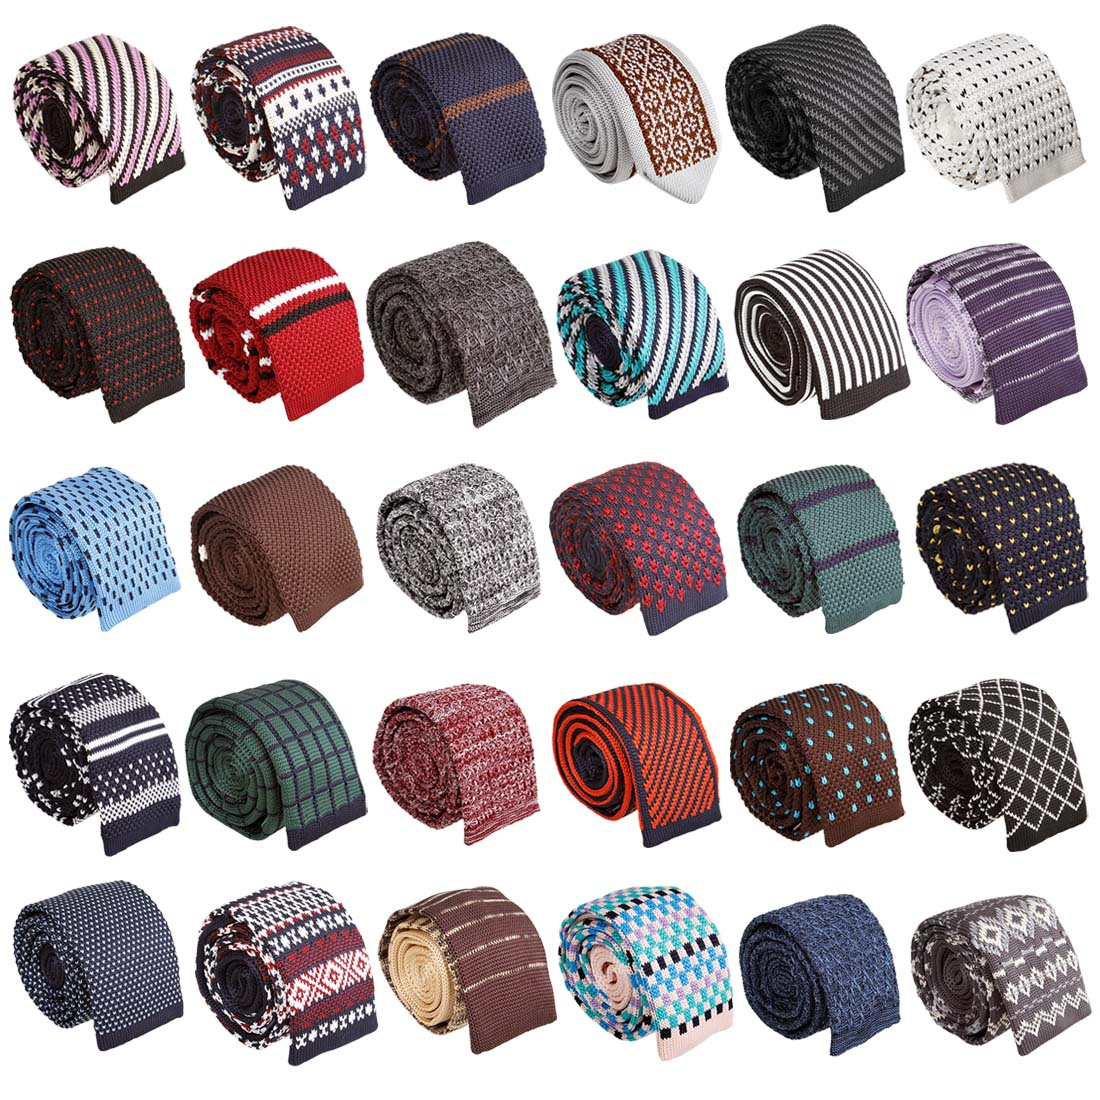 Men s Knit Tie Pattern : BMC Stylish 3pc Mixed Pattern Mens Fashion Knitted Neck Tie Accessory Set